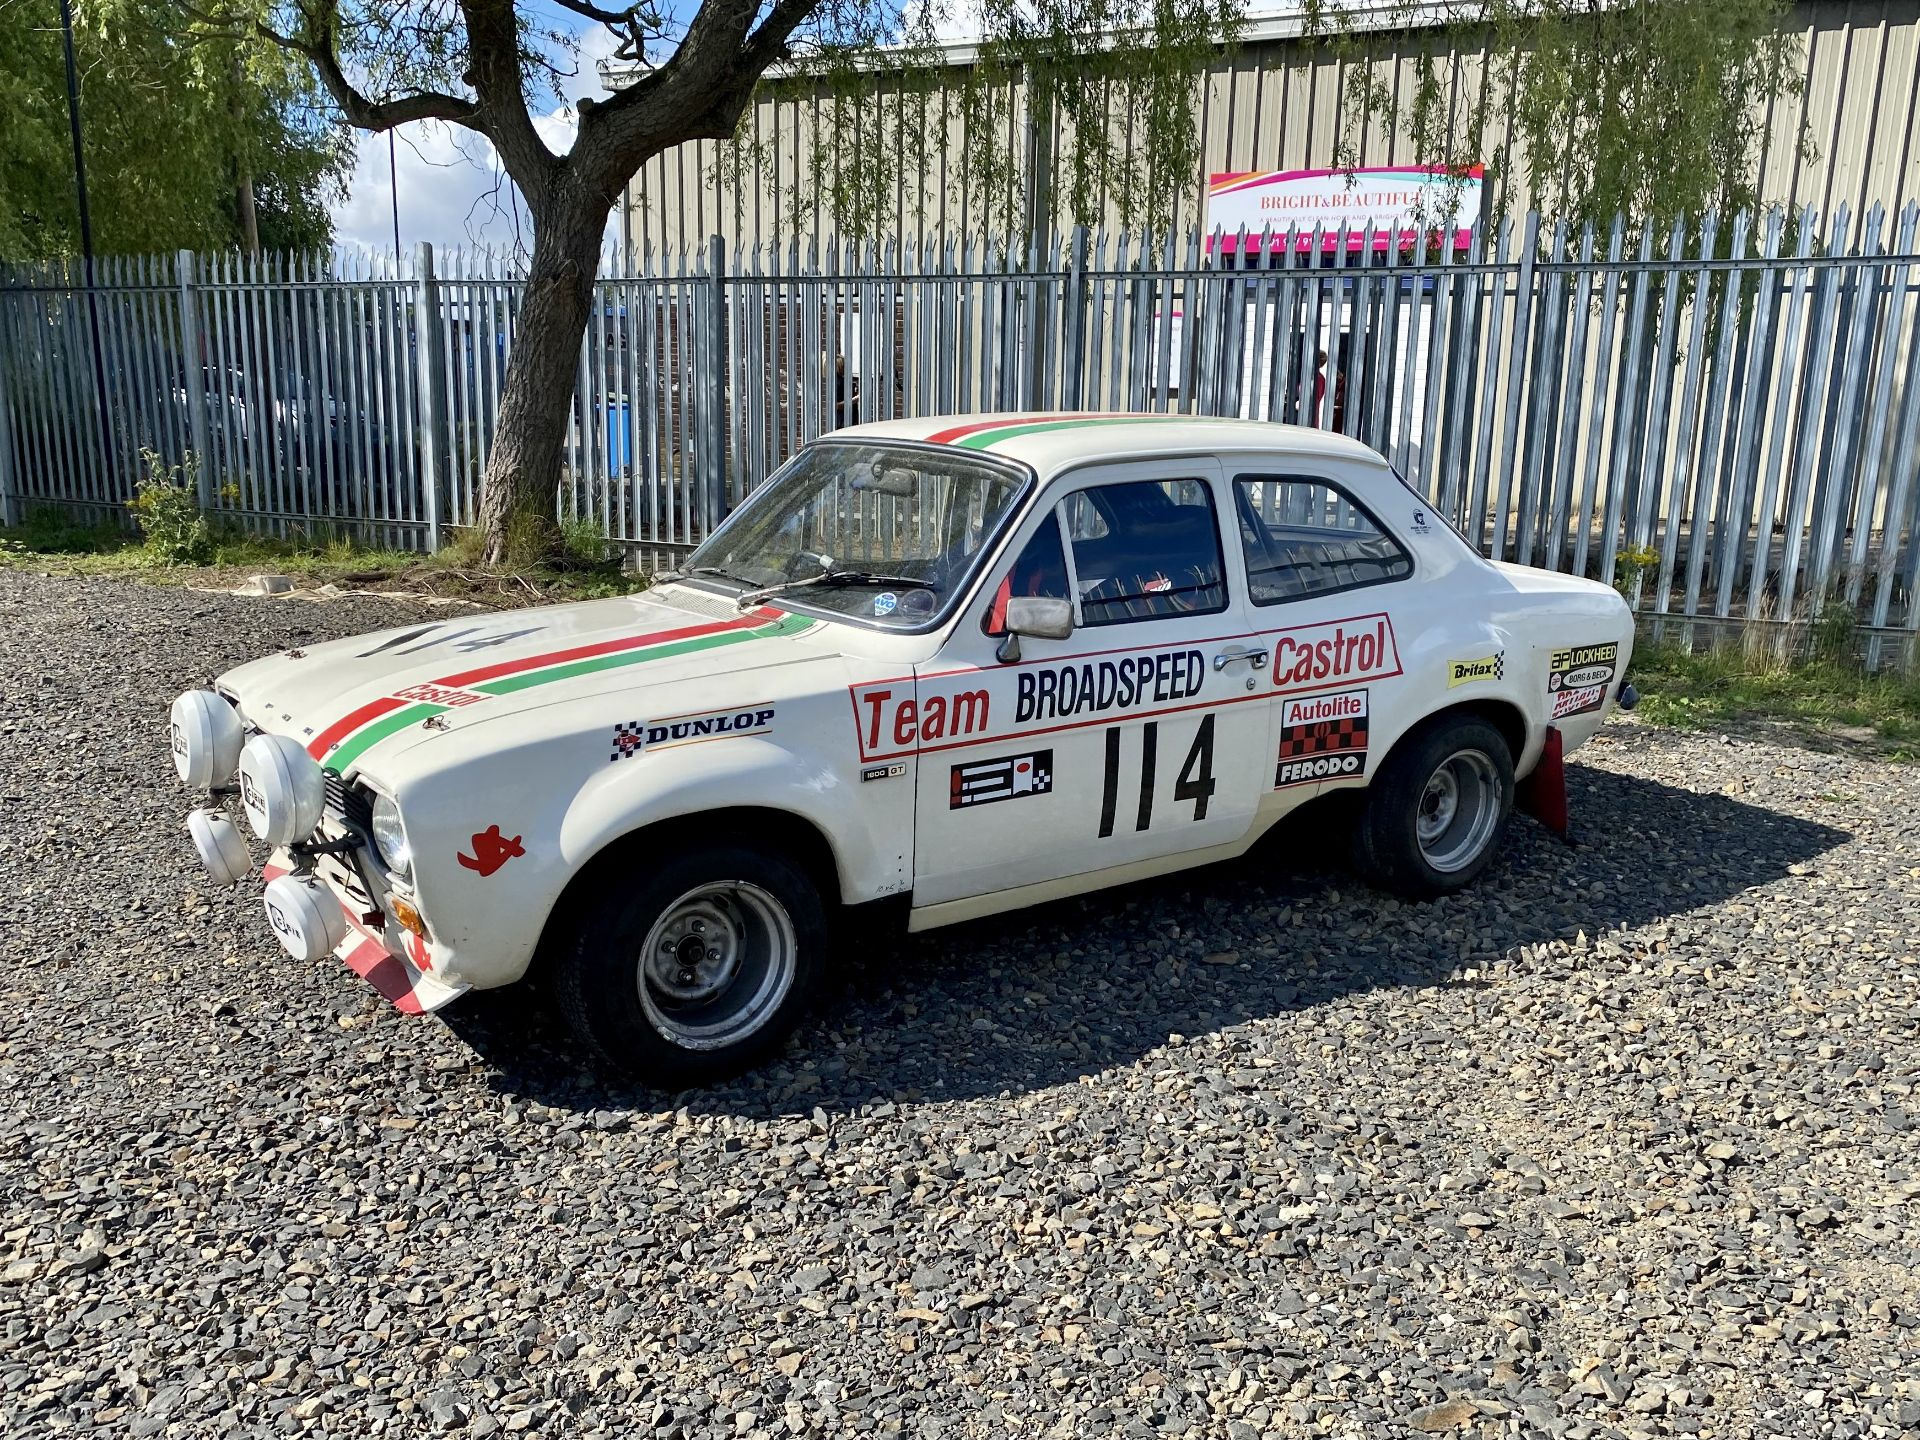 Ford Escort Mexico - Image 23 of 51